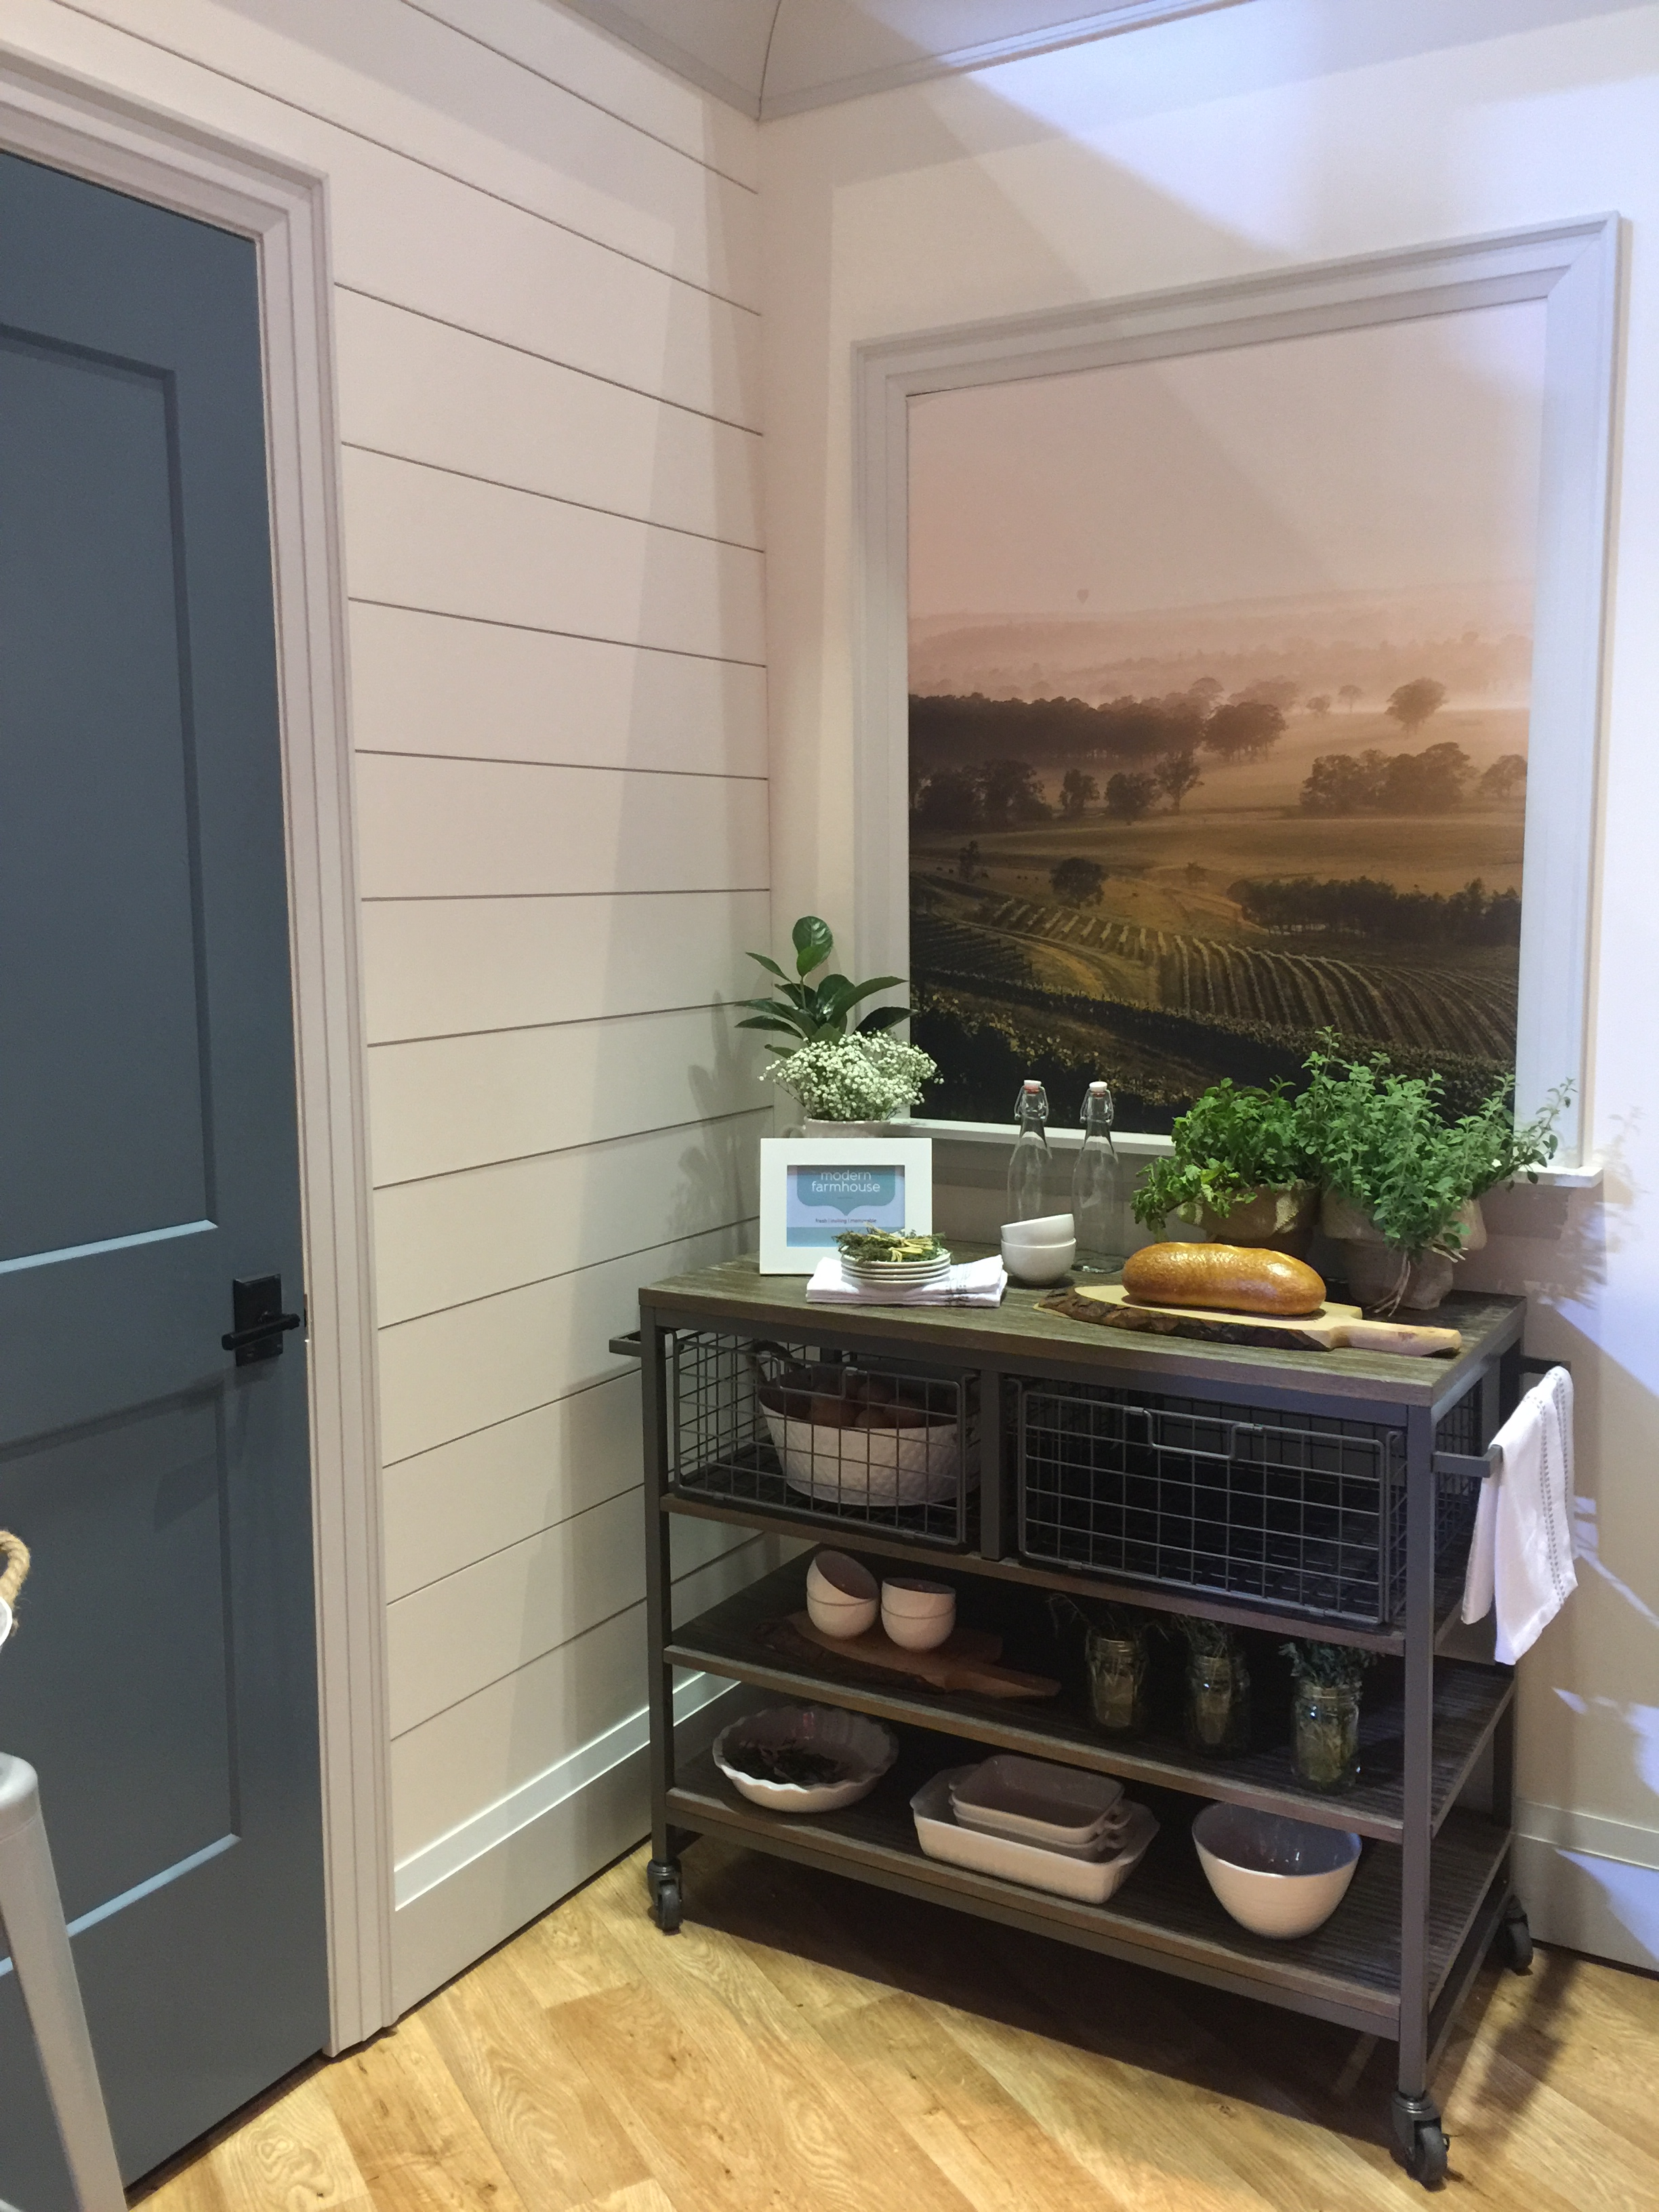 The Farmhouse collection has shiplap and other simple mouldings that work well with this style. #shiplap #farmhousestyle #mouldings #interiordesigntips